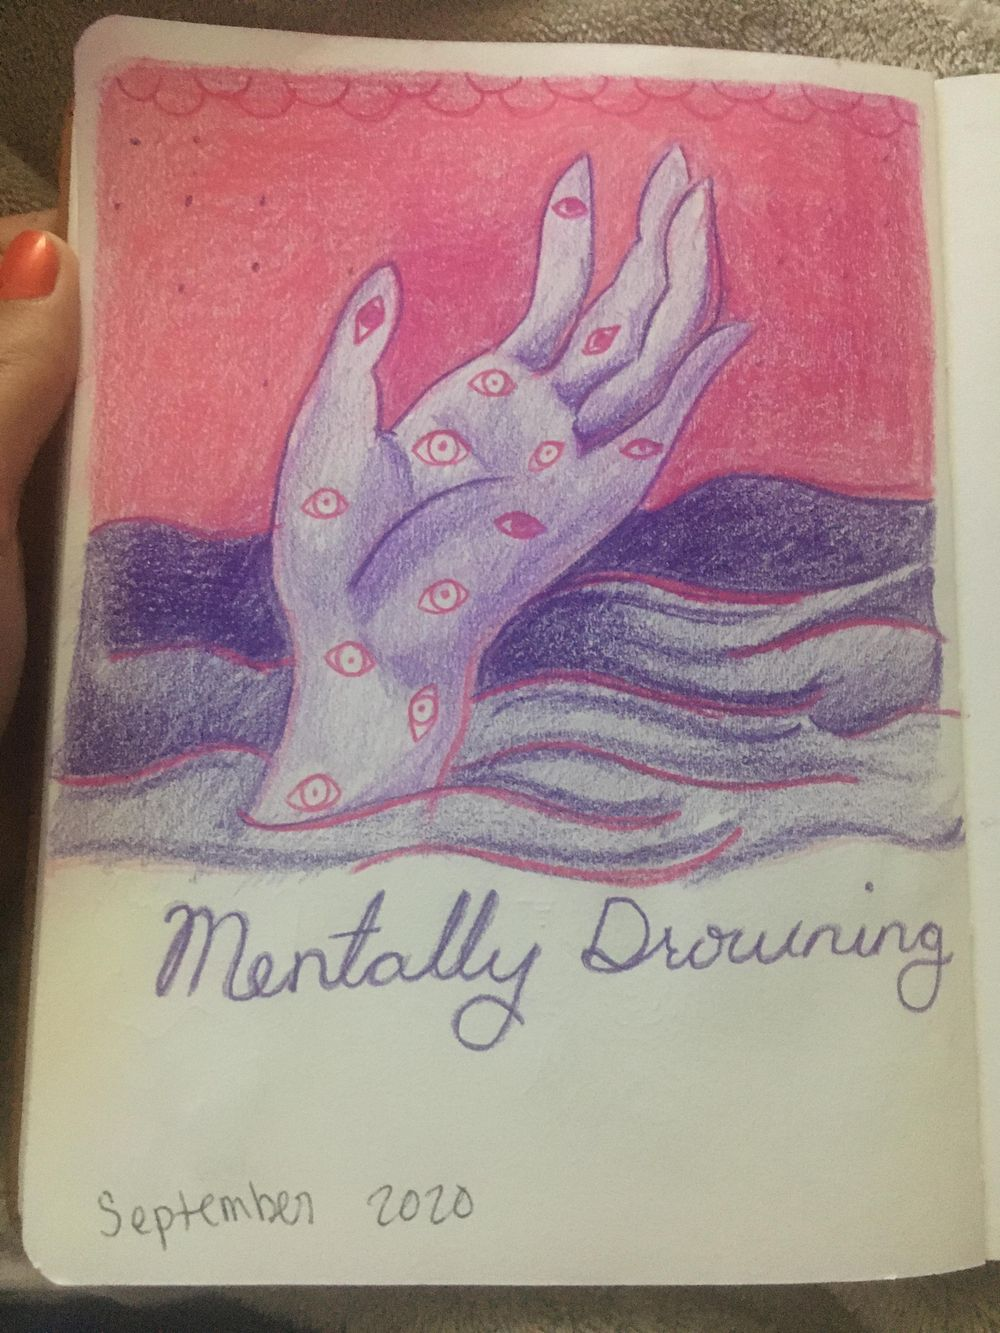 Mentally Drowning - image 2 - student project